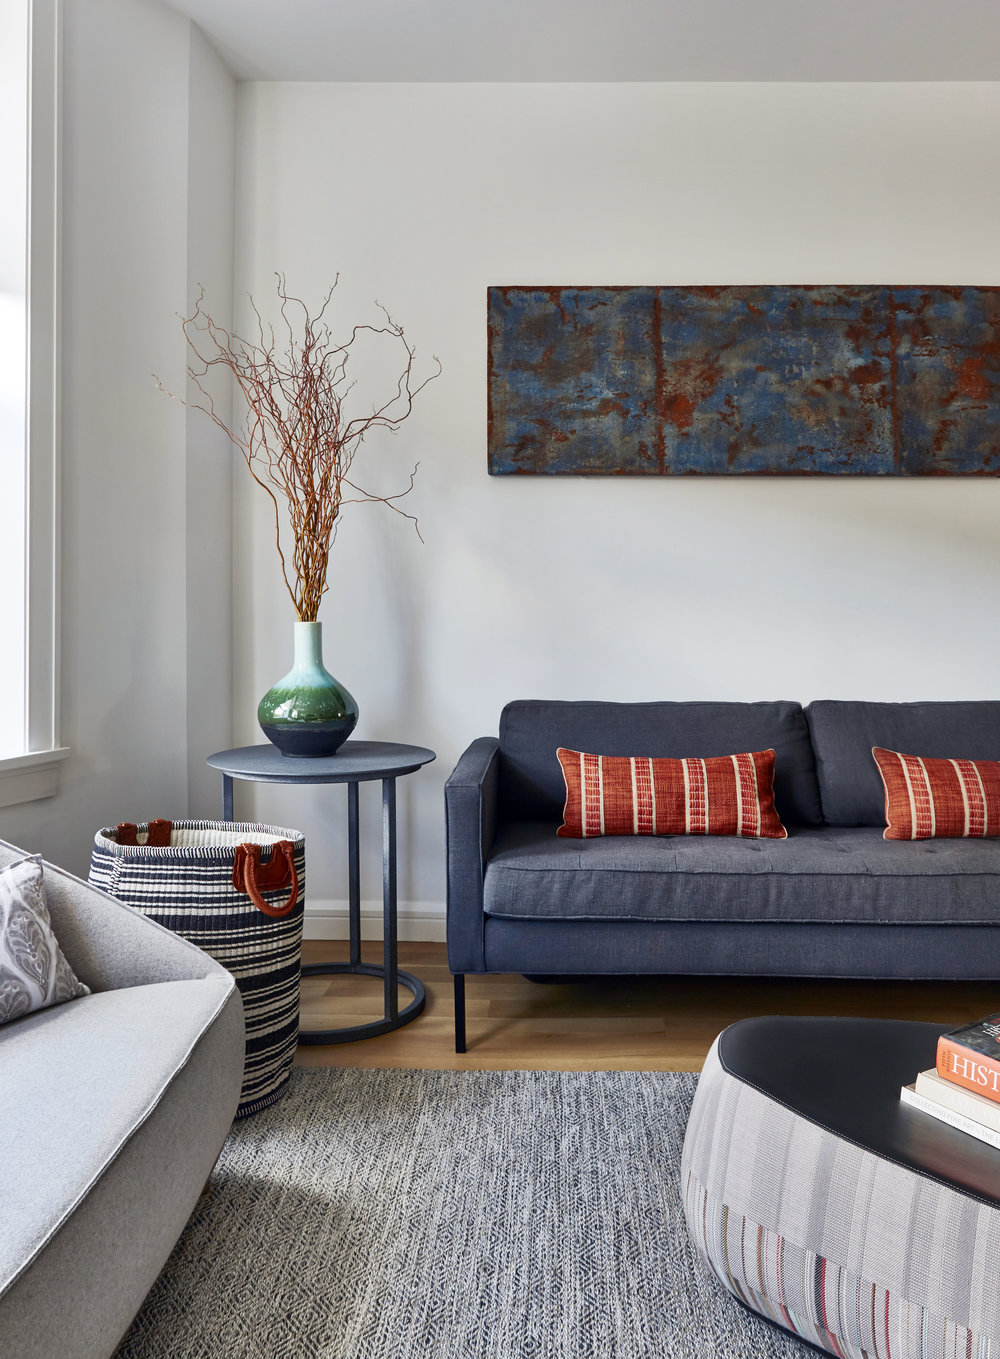 Blue-Dot-Sofa-Cozy-Living-Room-New-York-Brooklyn-Interior-Designer-Edesign.jpg